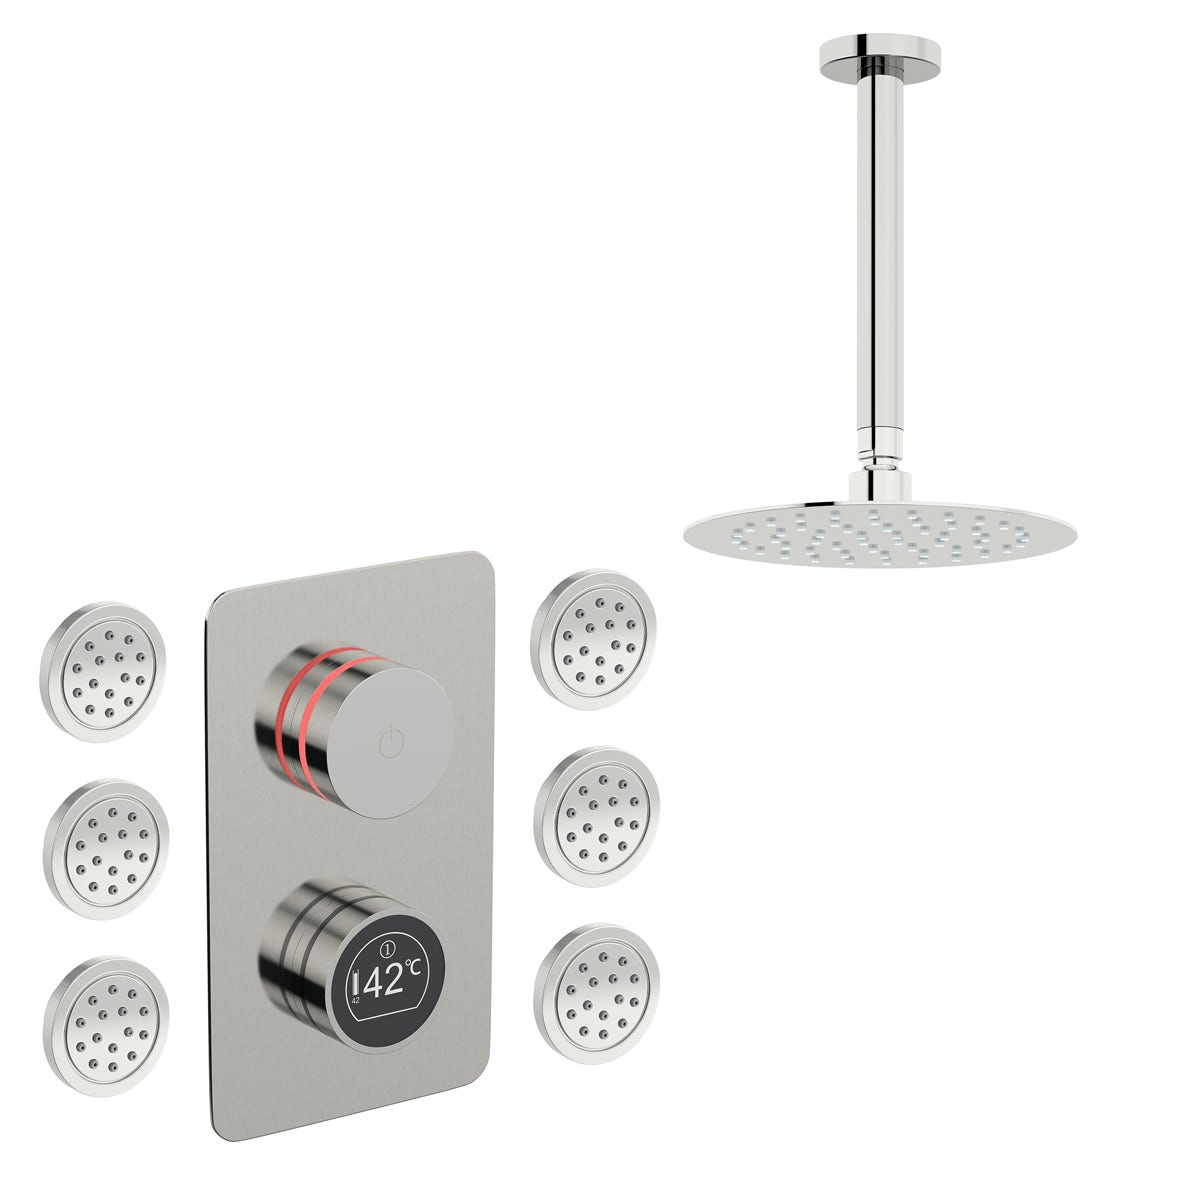 Mode Touch digital thermostatic shower valve with round body jets and shower head set